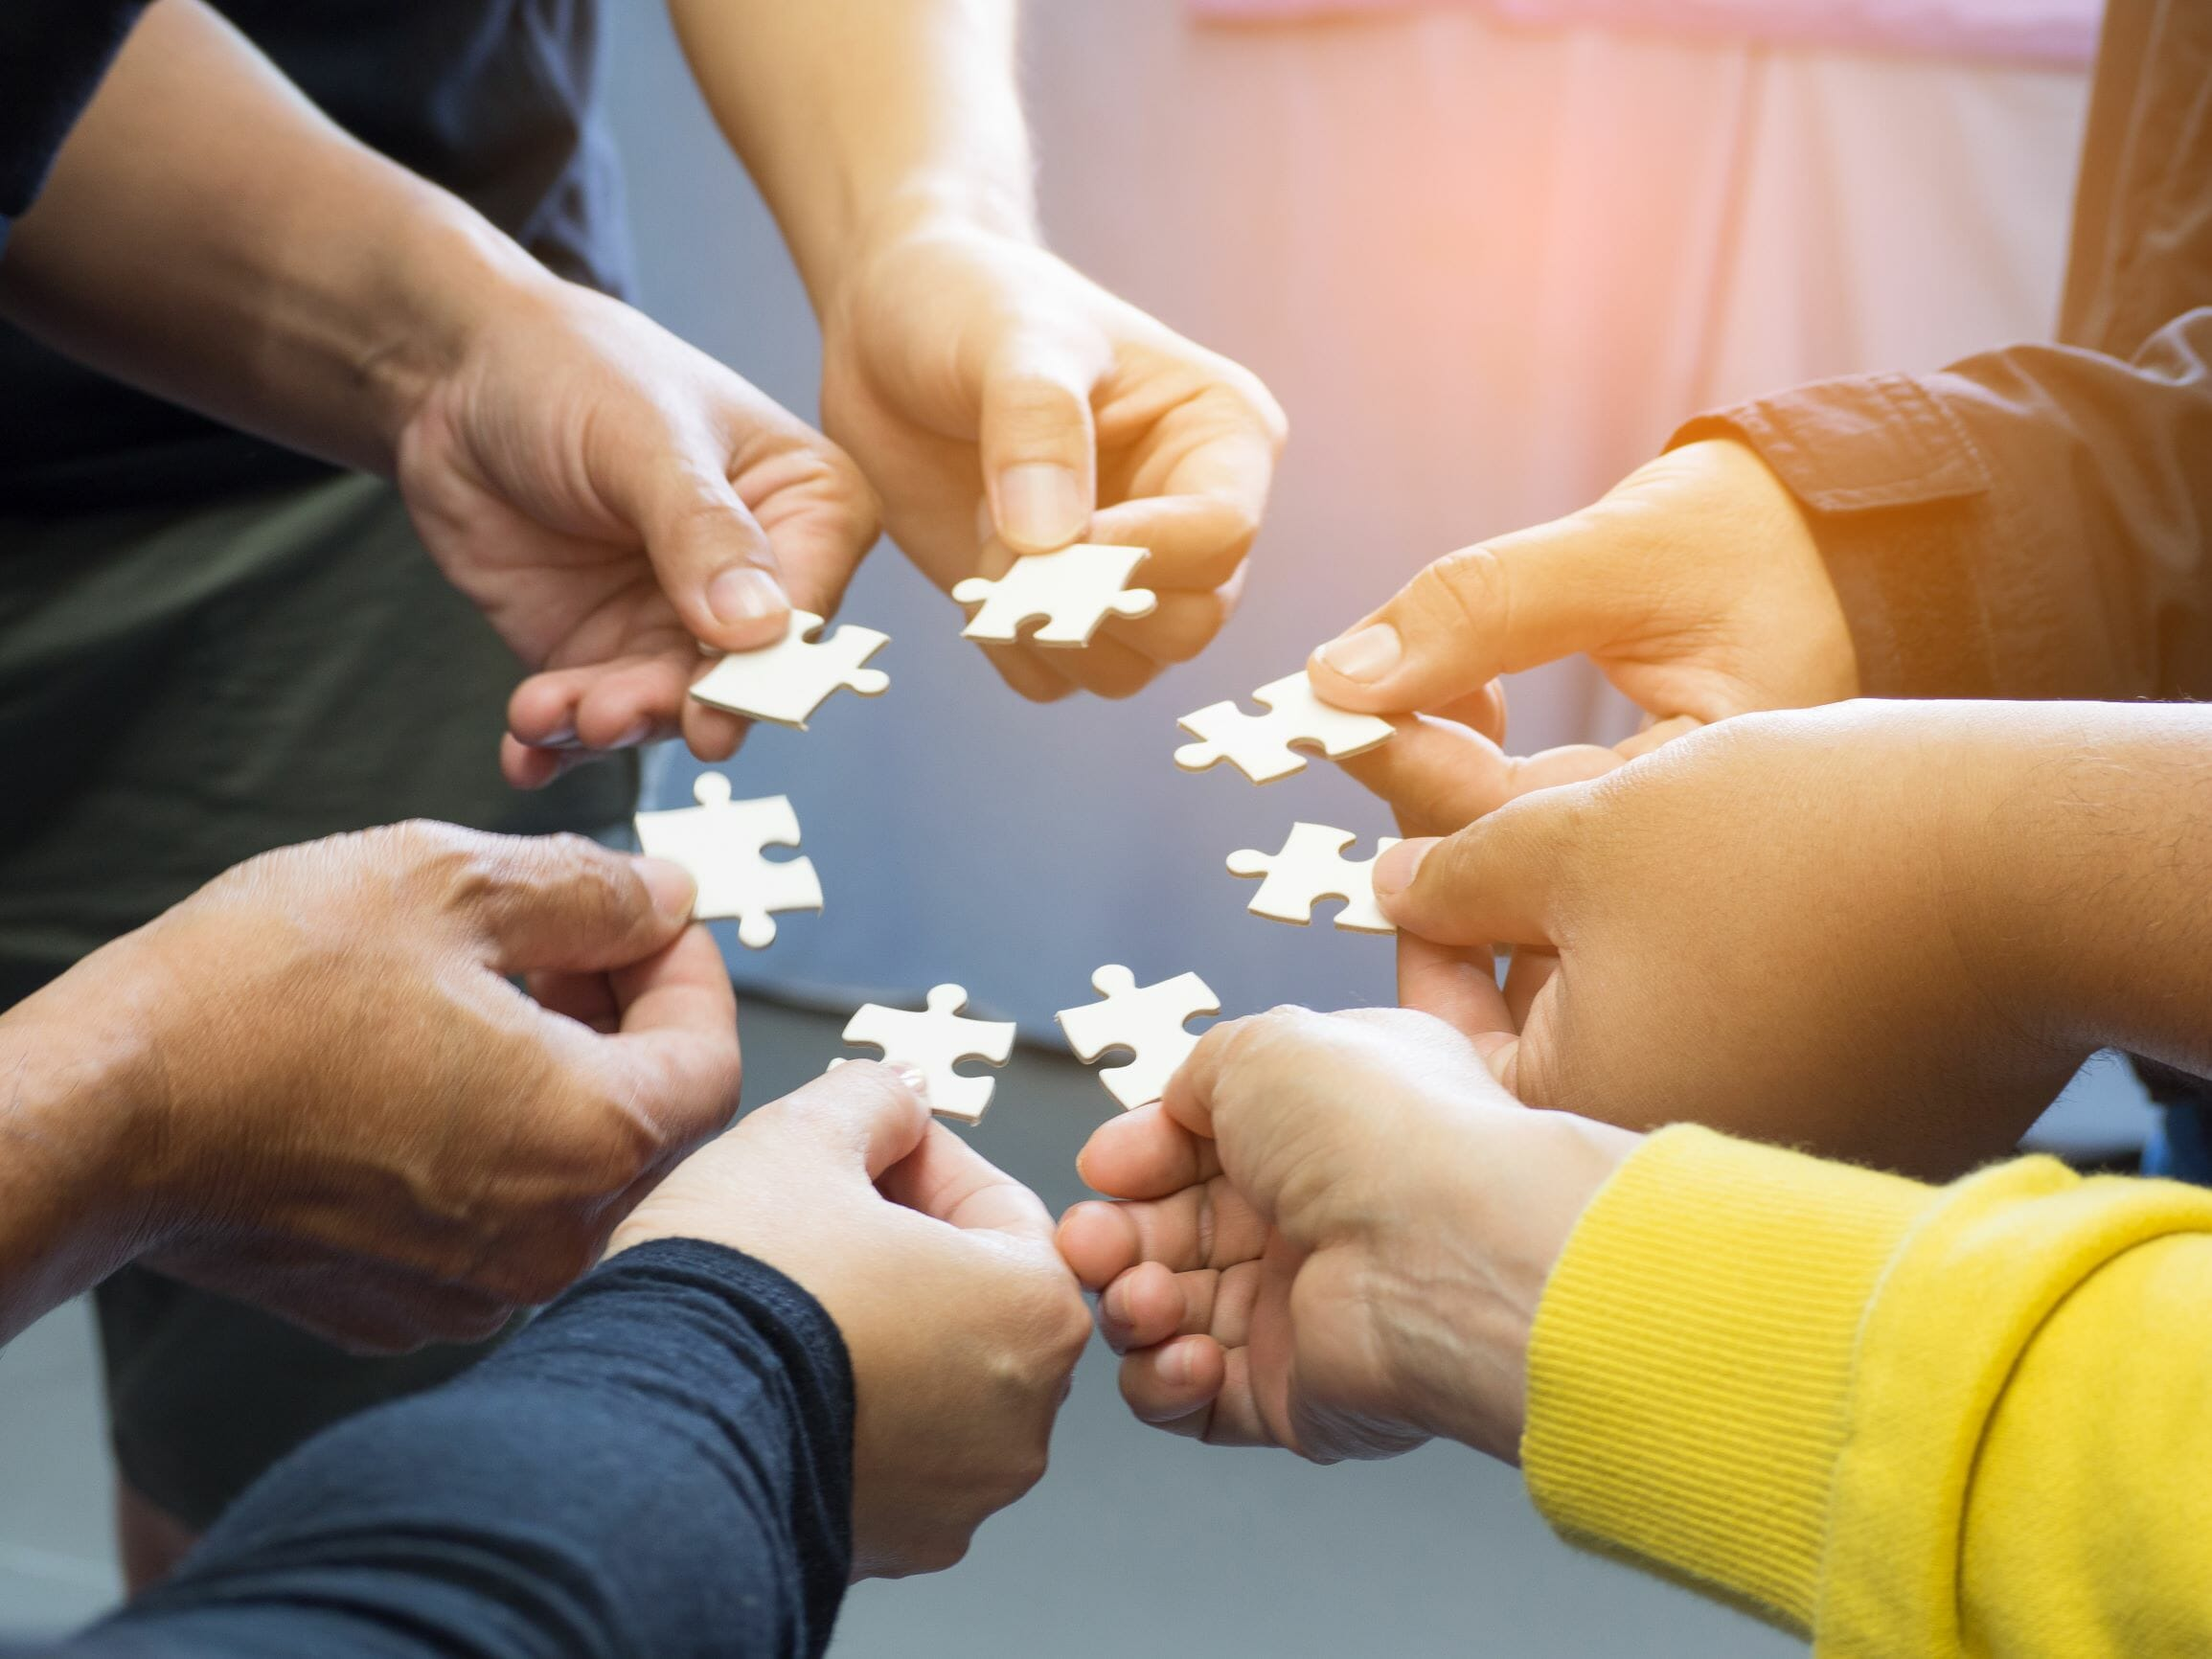 Collaborates image shutterstock_1028045047